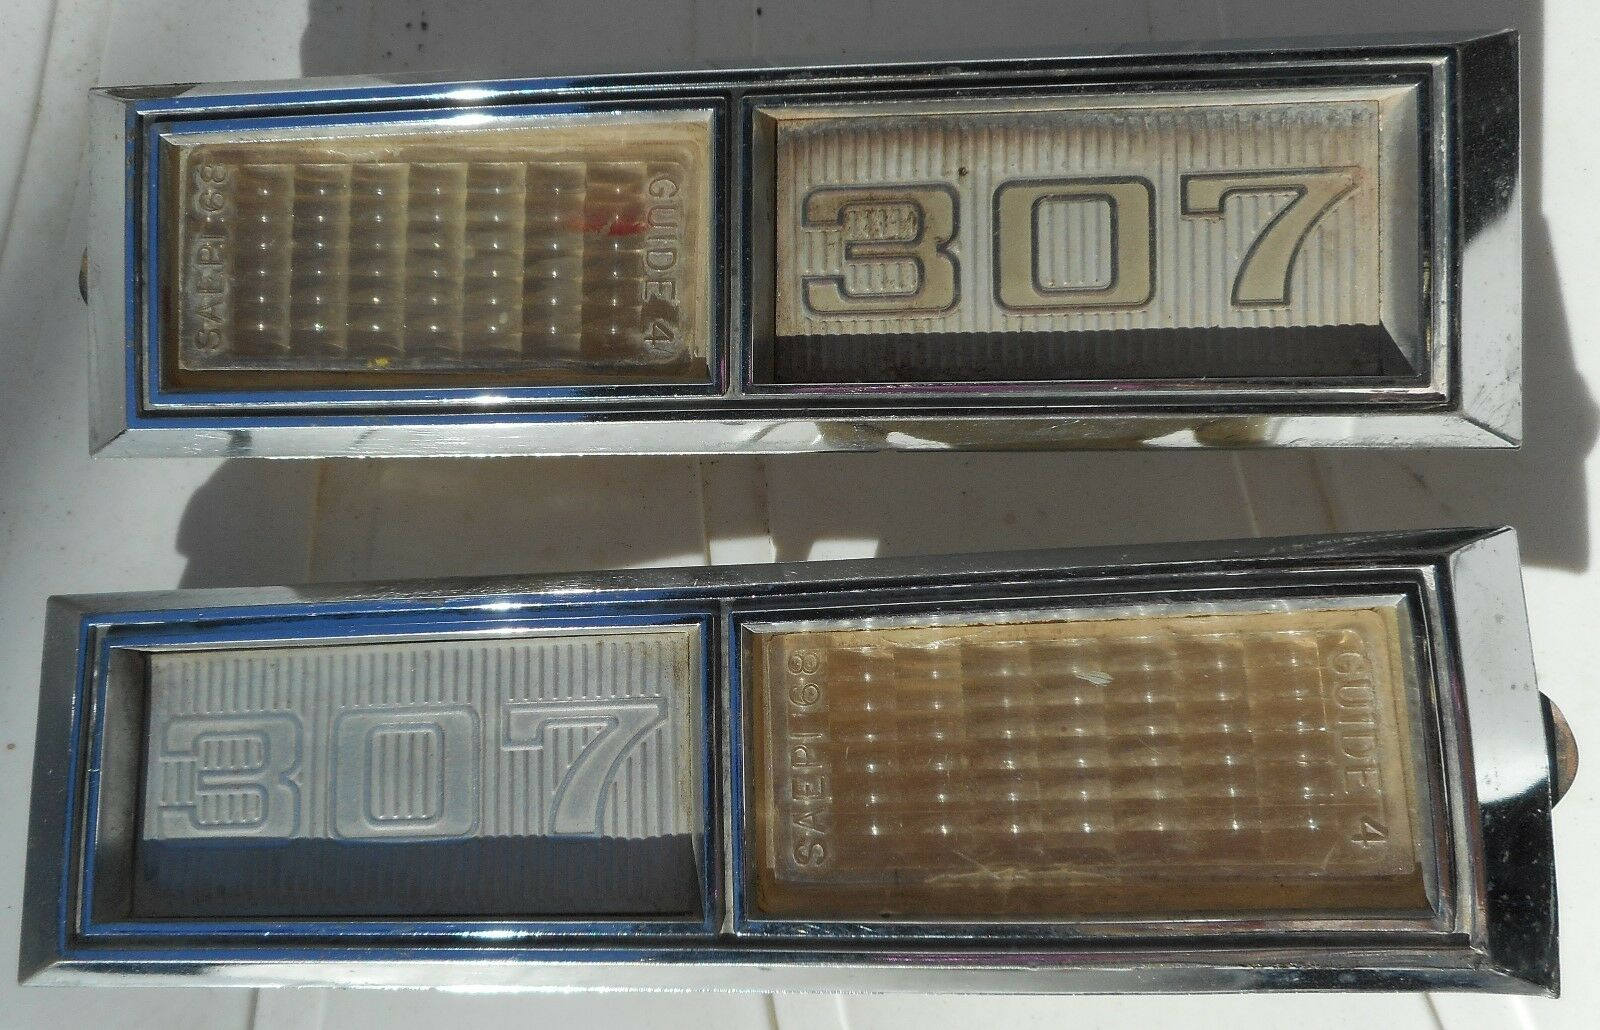 PAIR 1968 CHEVROLET CHEVY IMPALA 307 EMBLEMS SIDE MARKER LIGHTS 3920873 3920874